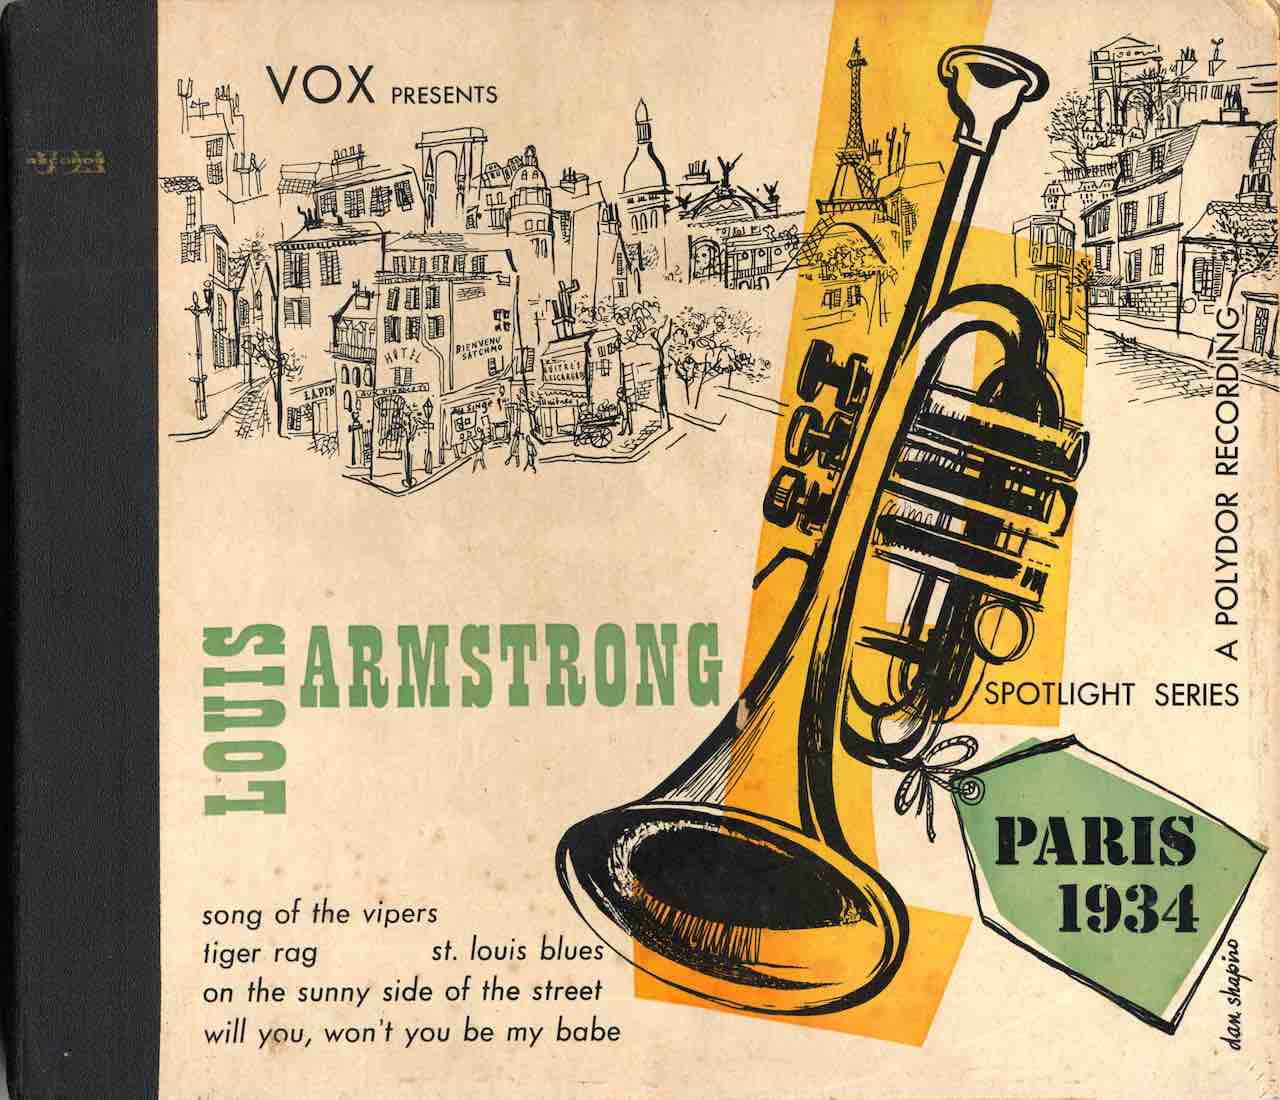 Armstrong Paris 34 - copie.jpg